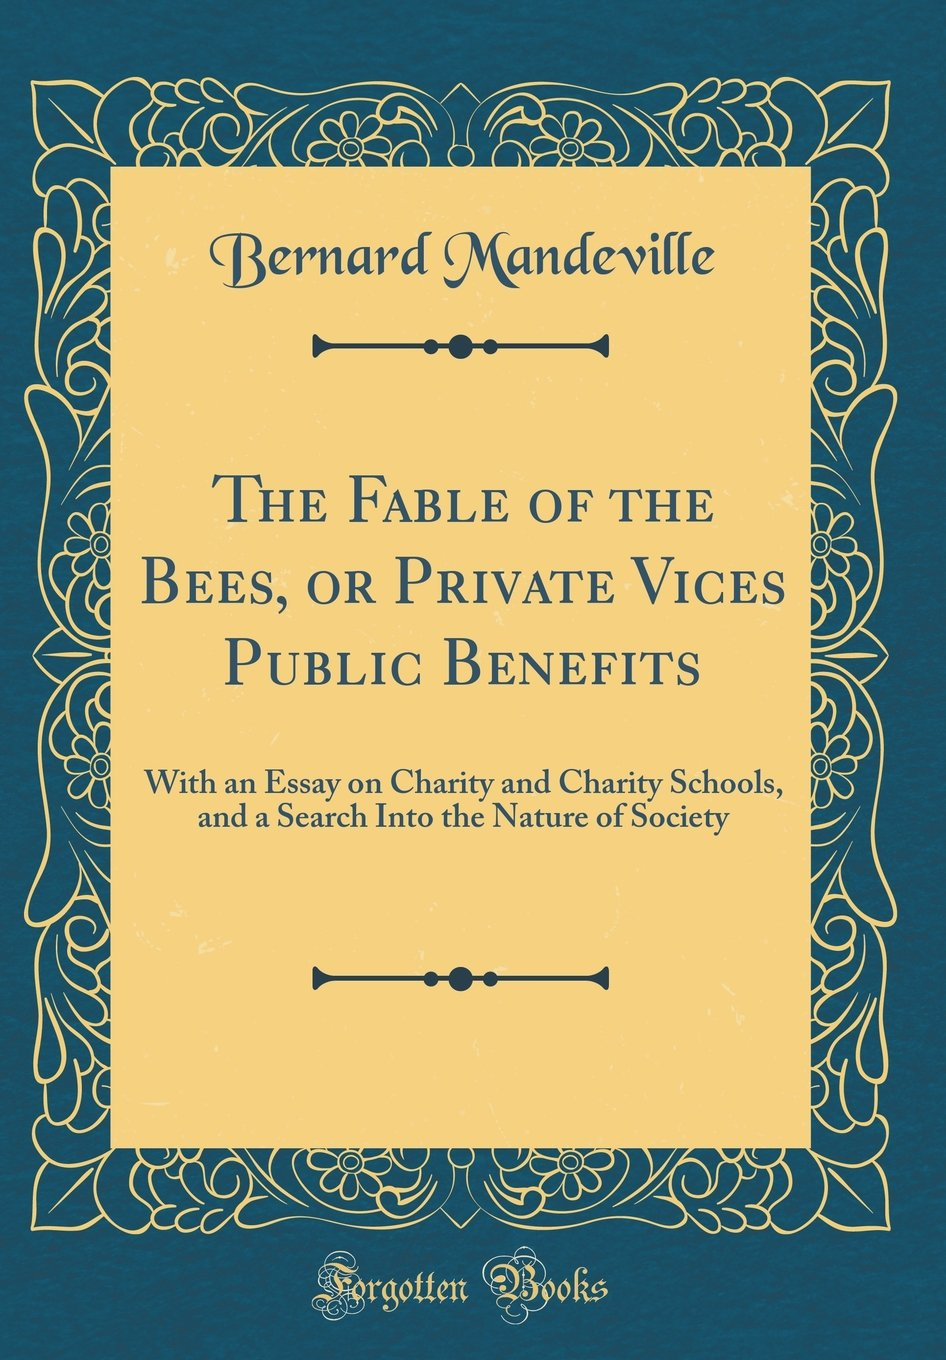 Download The Fable of the Bees, or Private Vices Public Benefits: With an Essay on Charity and Charity Schools, and a Search Into the Nature of Society (Classic Reprint) PDF